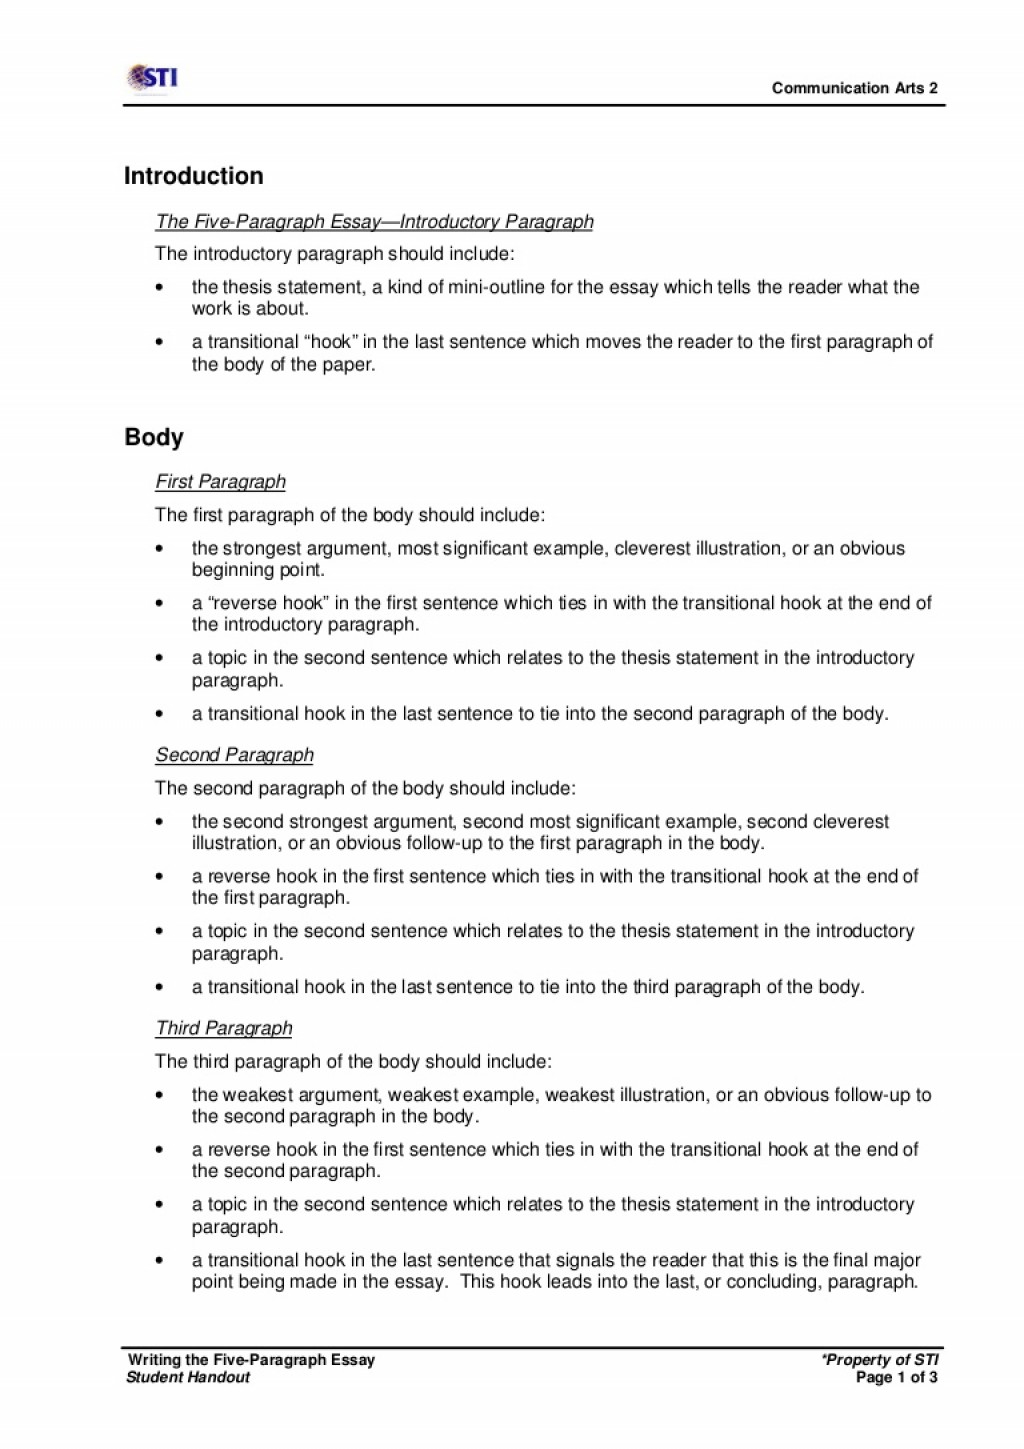 012 Essay Example First Sentence Of An Week16sessions46 48writingthefive Paragraphessays Handout Phpapp02 Thumbnail Frightening Academic Good Writing The Draft Large